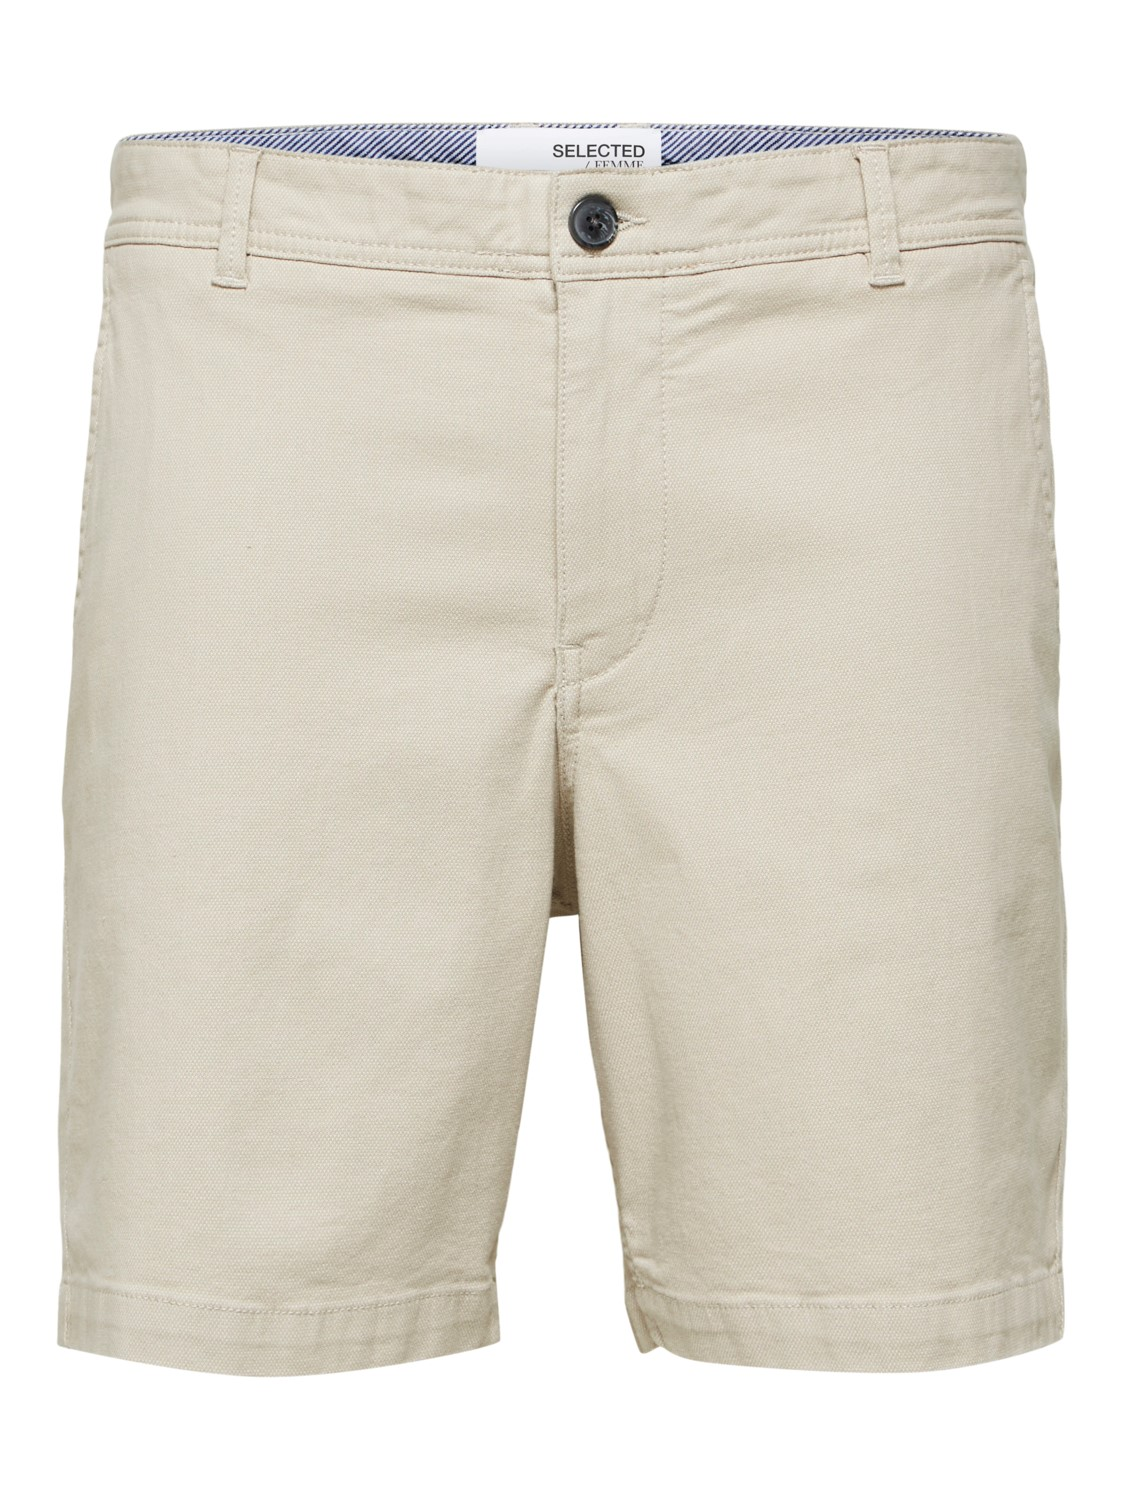 Selected Shorts Flex Sand | Gate36 Hobro